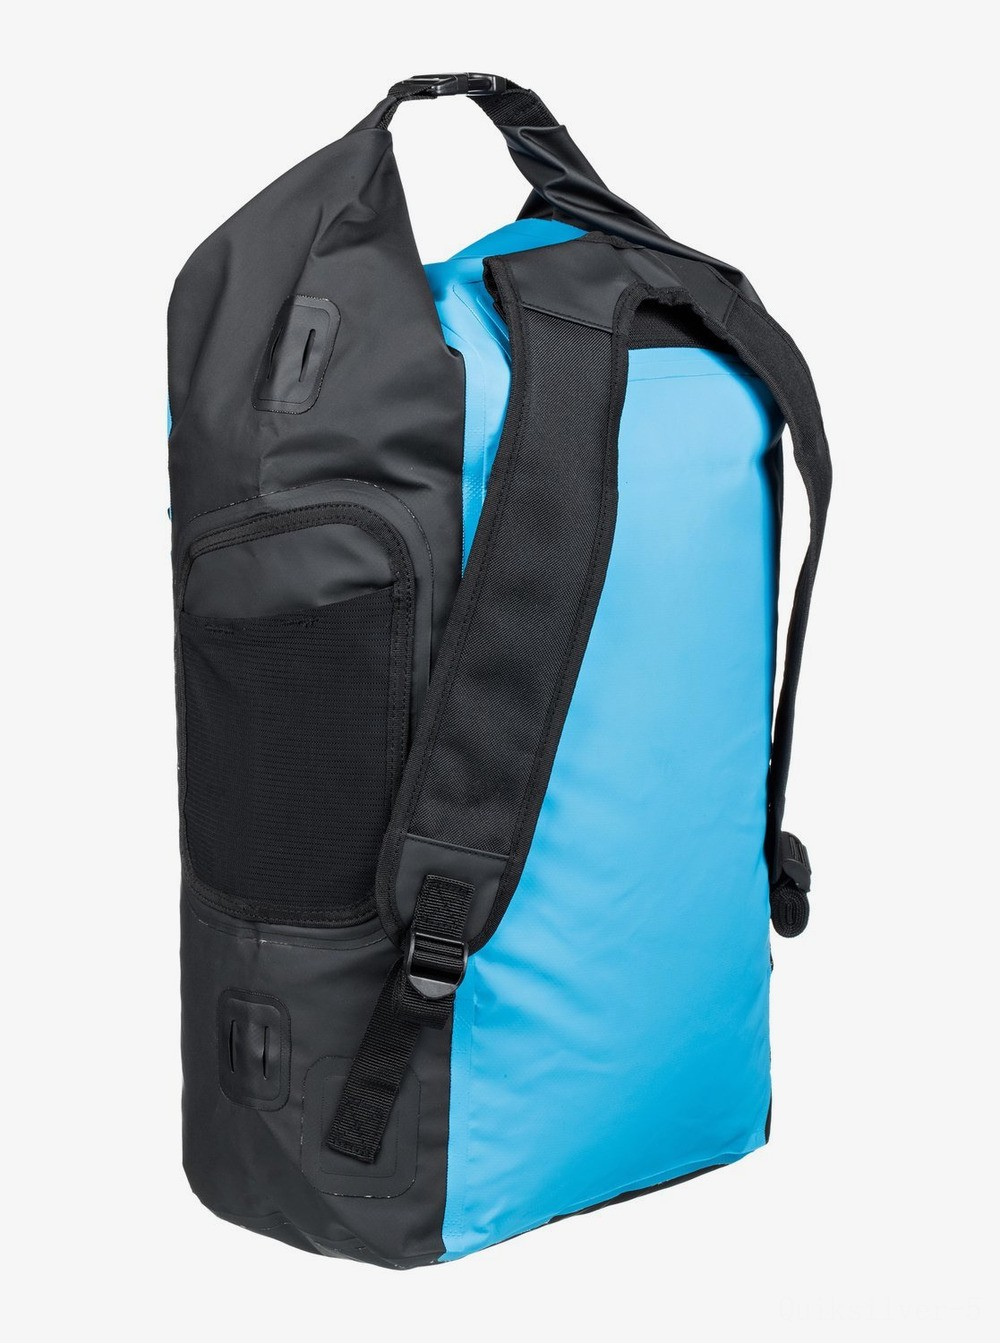 limited sale sea stash 35l medium roll-top wet/dry surf backpack - blithe best price last chance